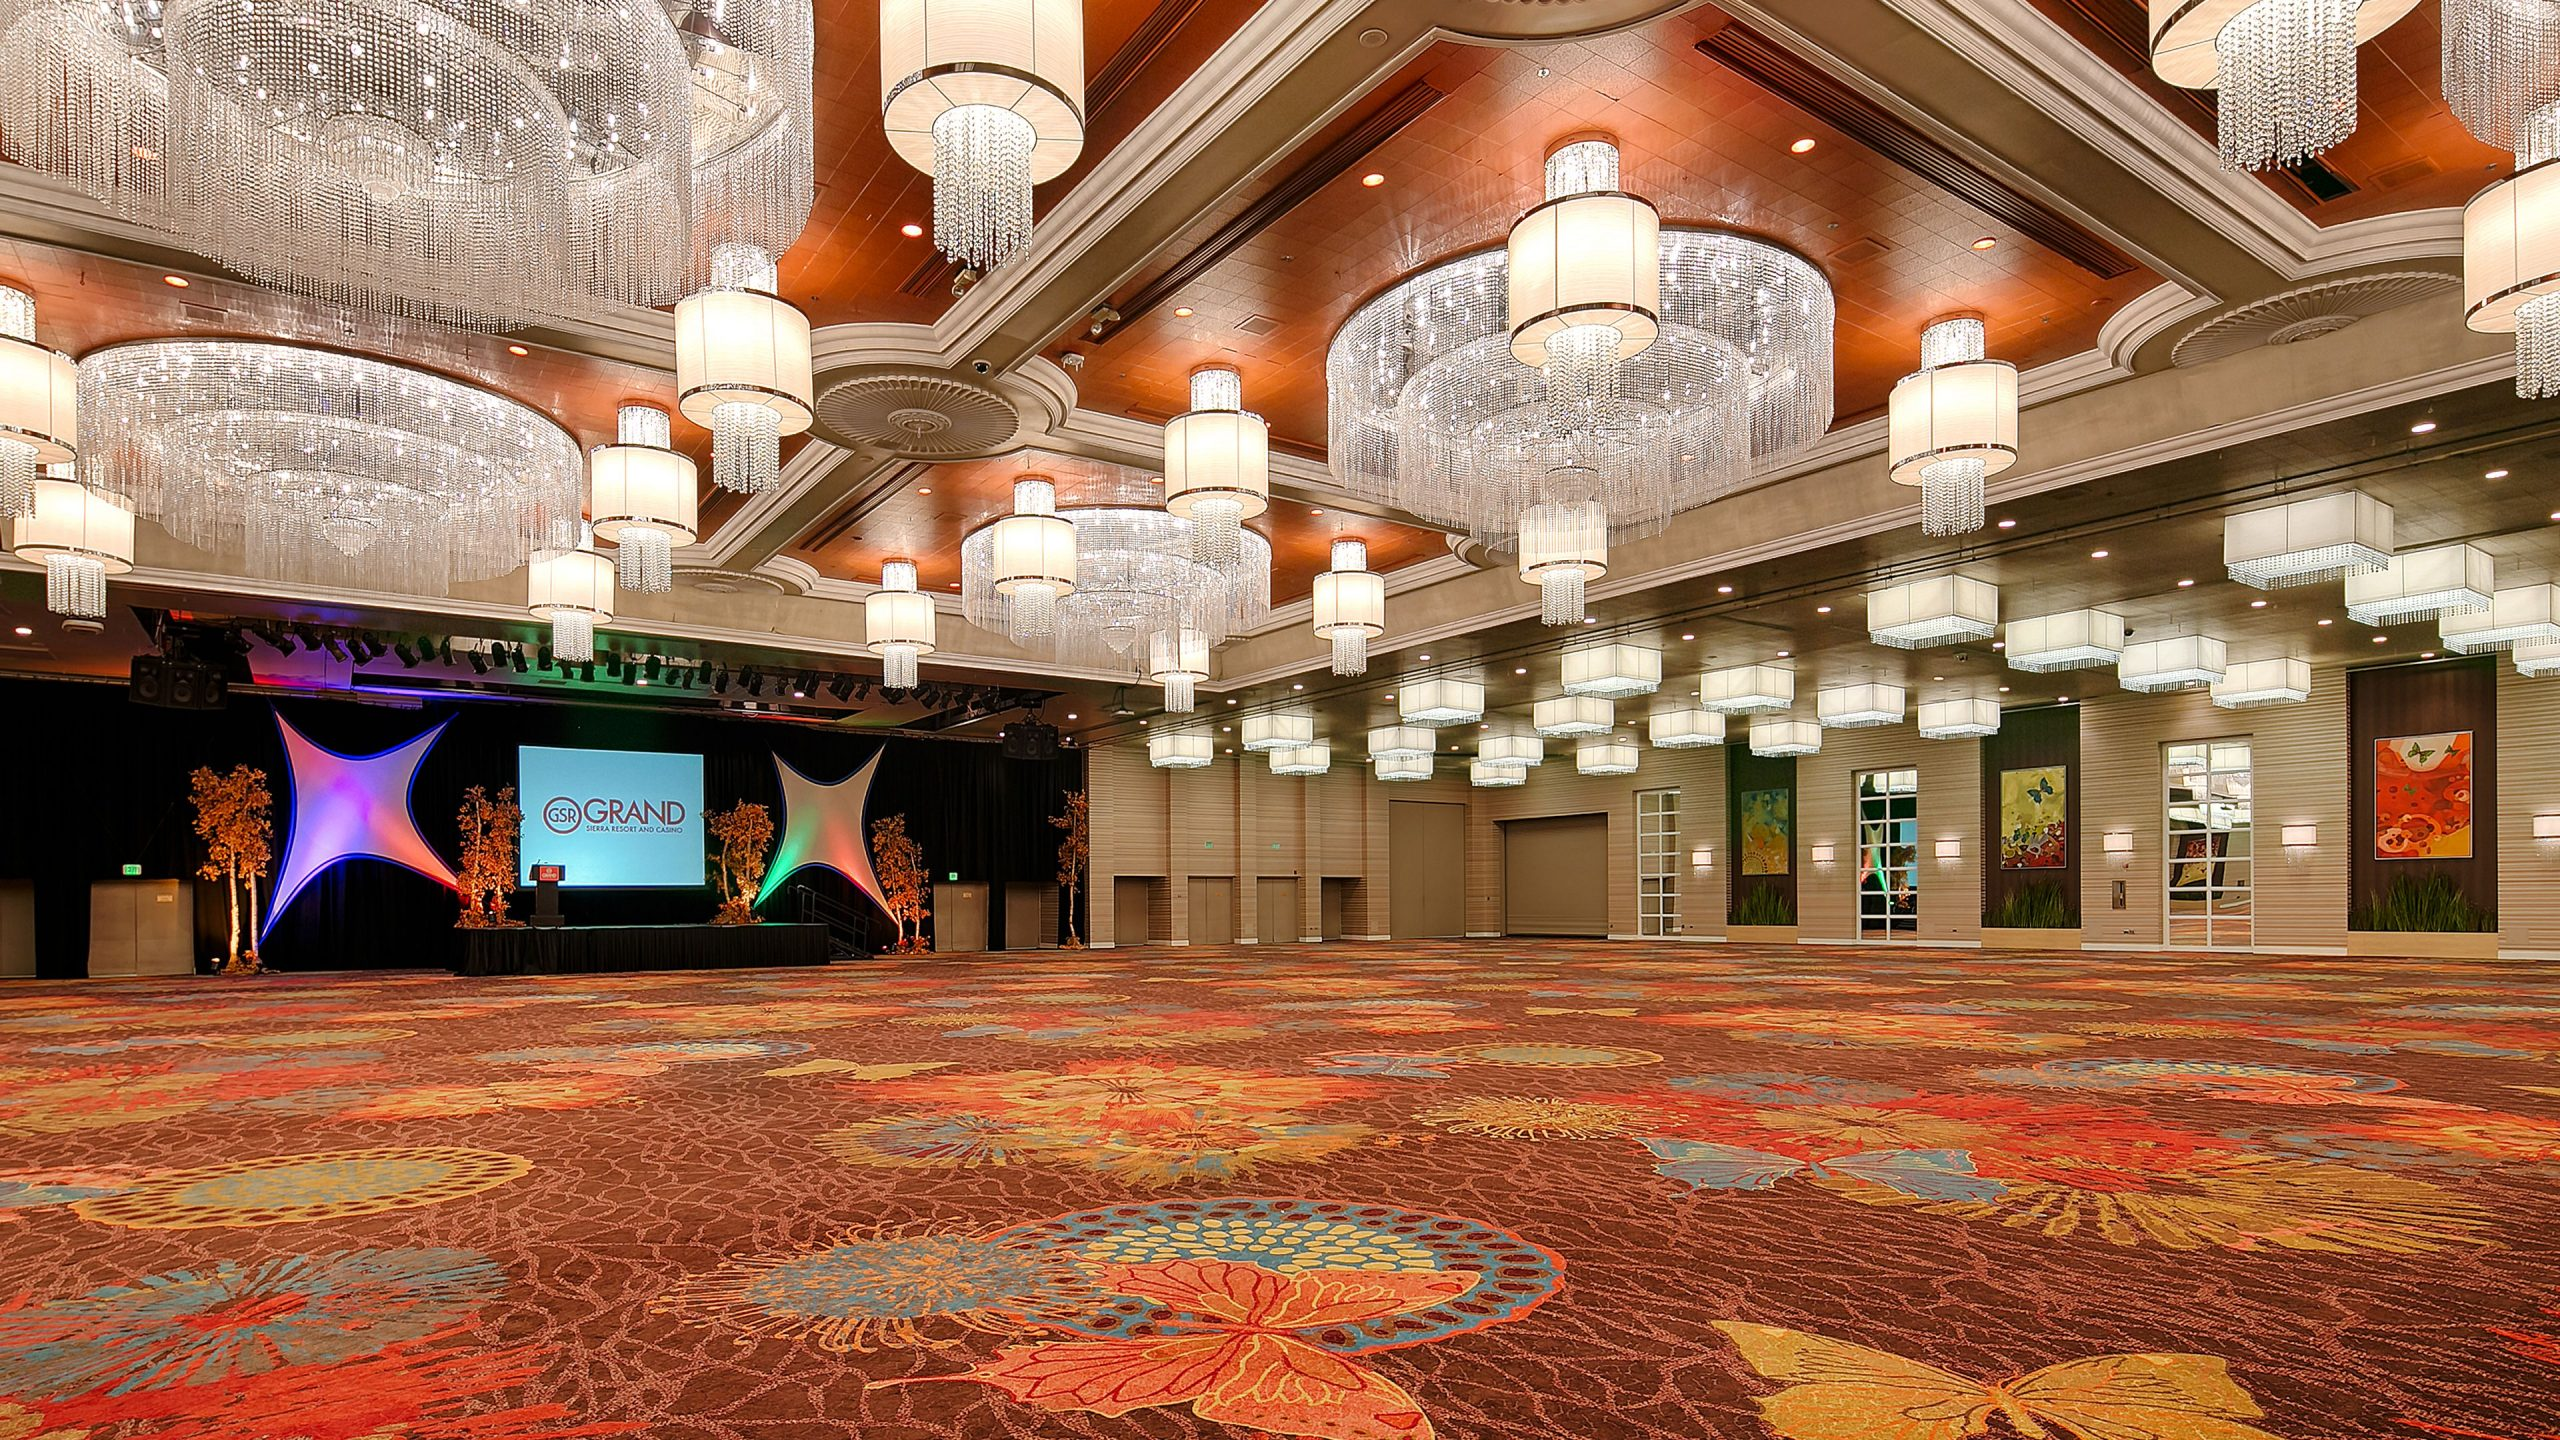 Grand Ballroom at Grand Sierra Resort